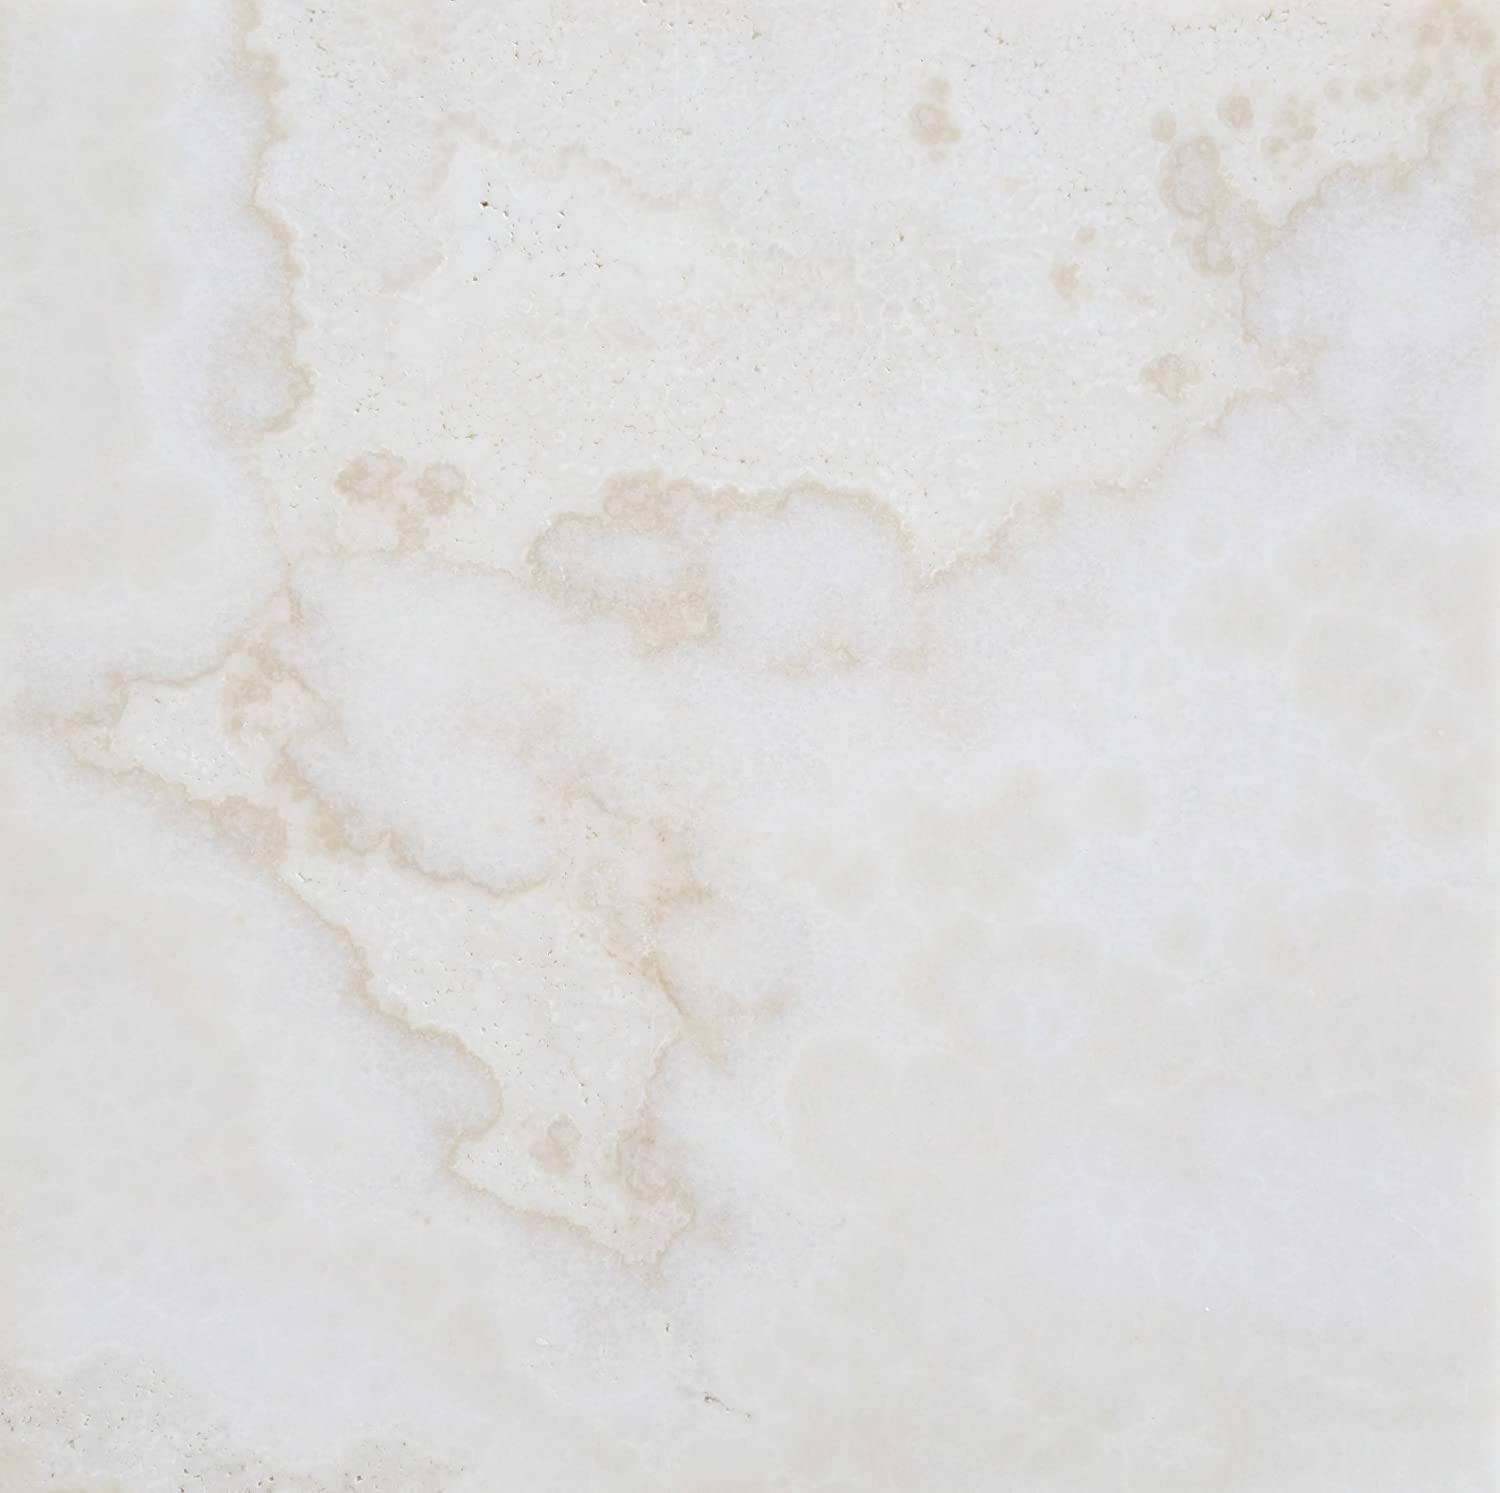 White Onyx (Bianco Fantastico) 12 X 12 Polished Tile, Cross-Cut ...